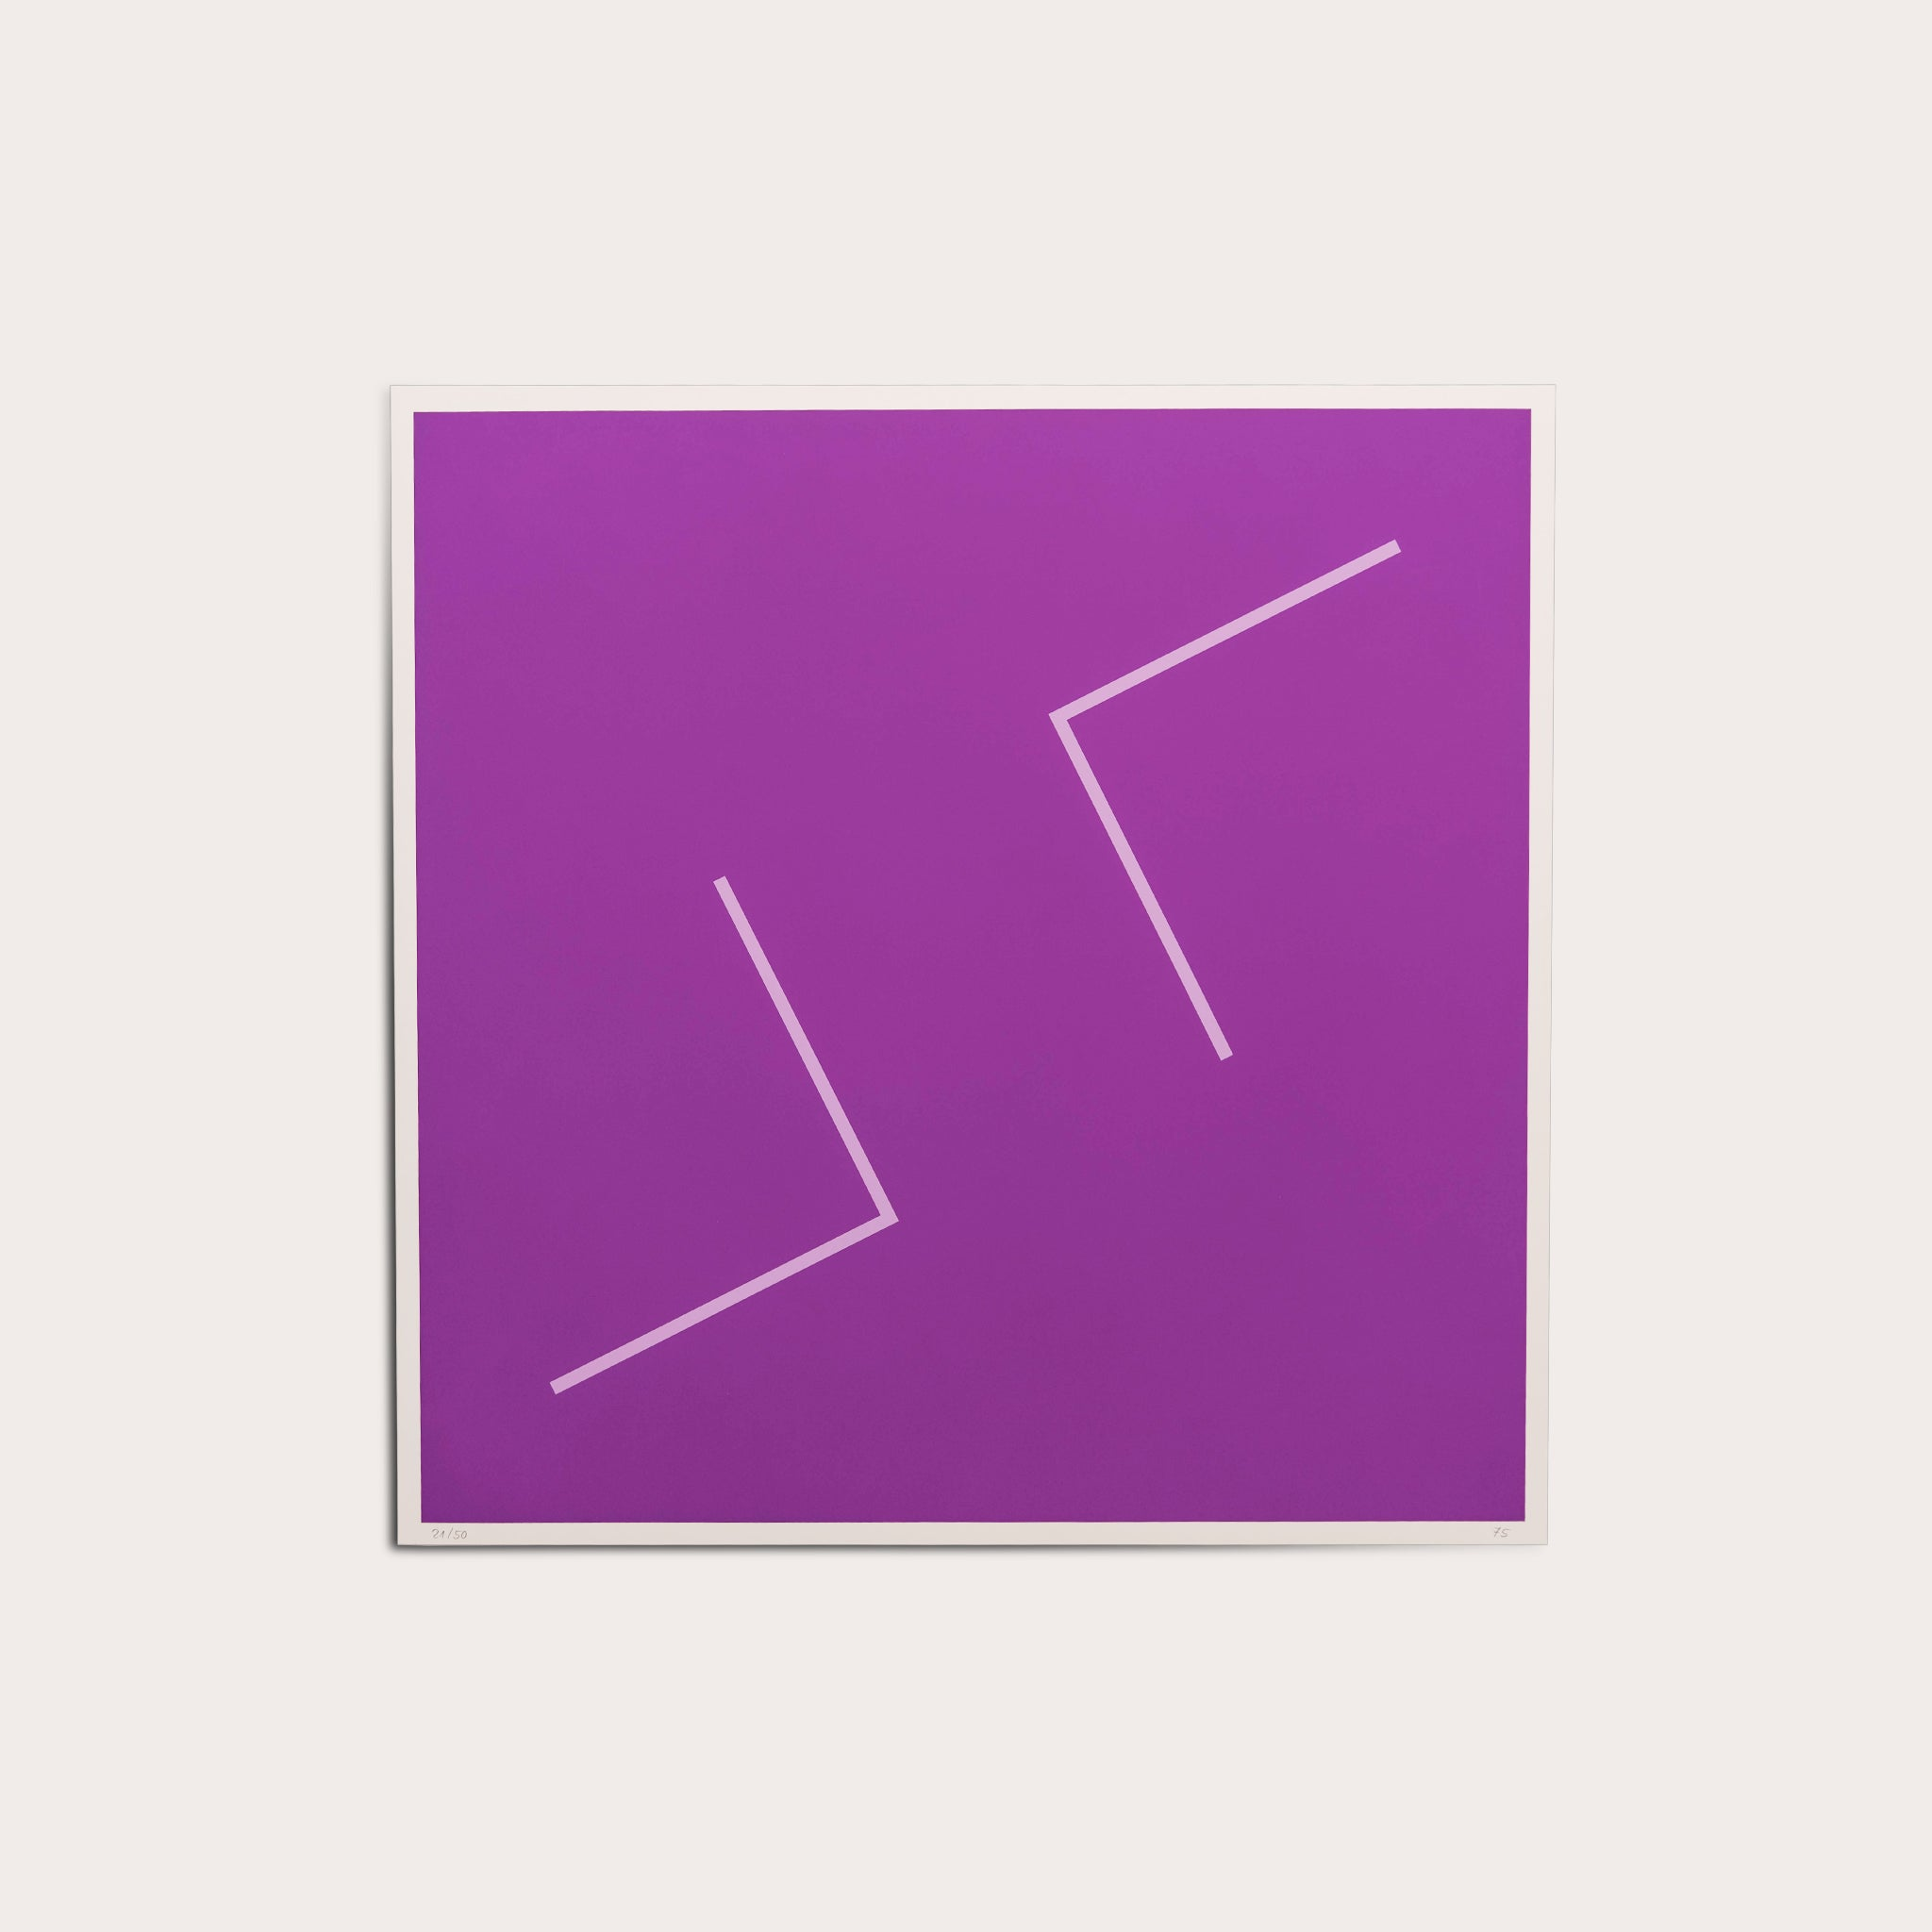 Untitled (Violet), 1975 Prints Maximilian Weishaupt Designer Furniture Sku: 040-270-10009